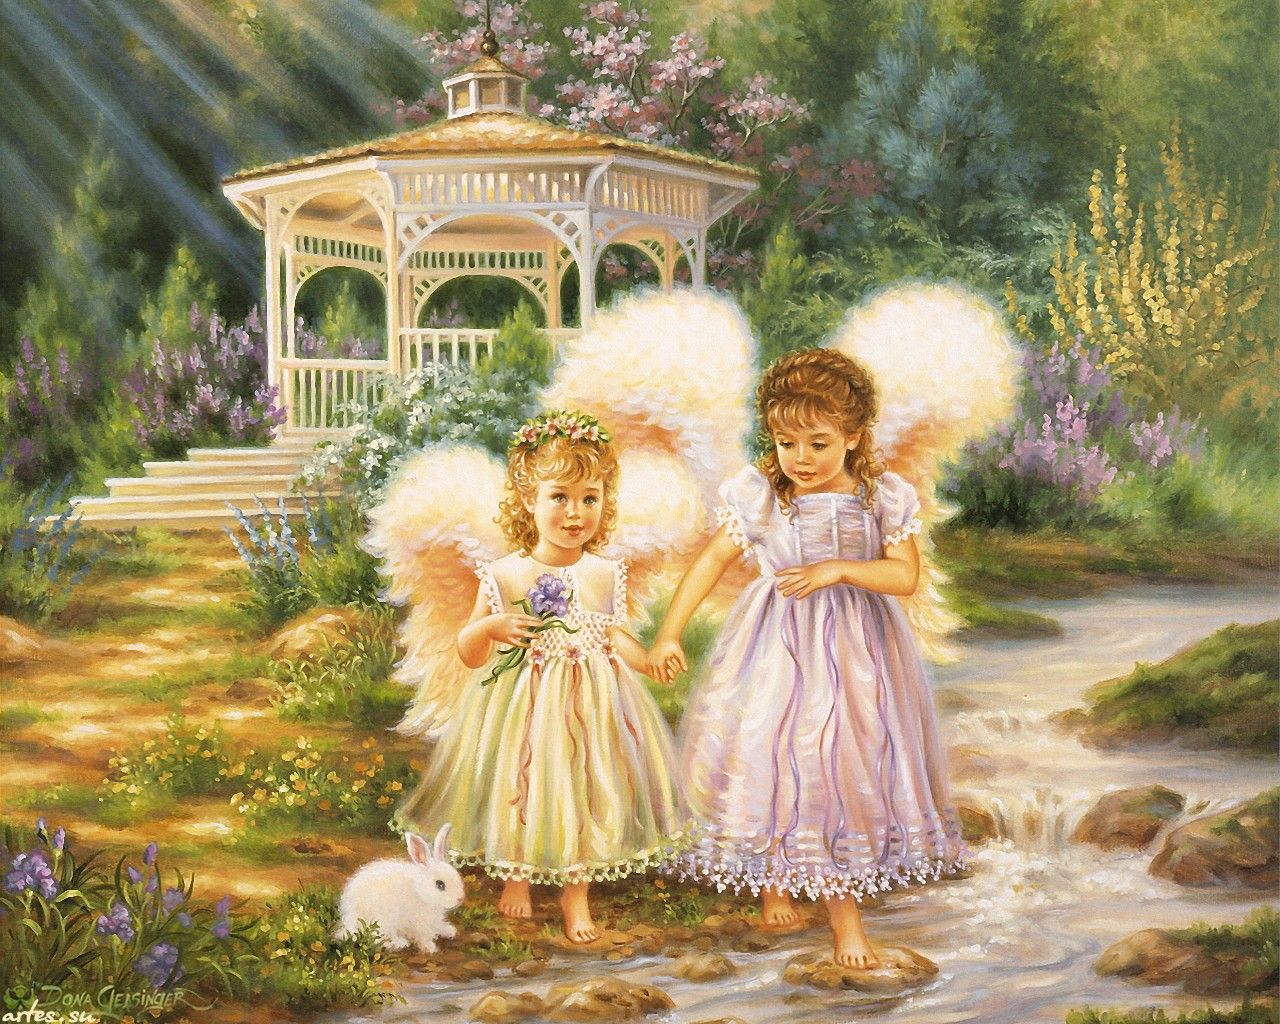 garden that moore heal heaven cannot pin earth no ideas st has sorrow angels thomas